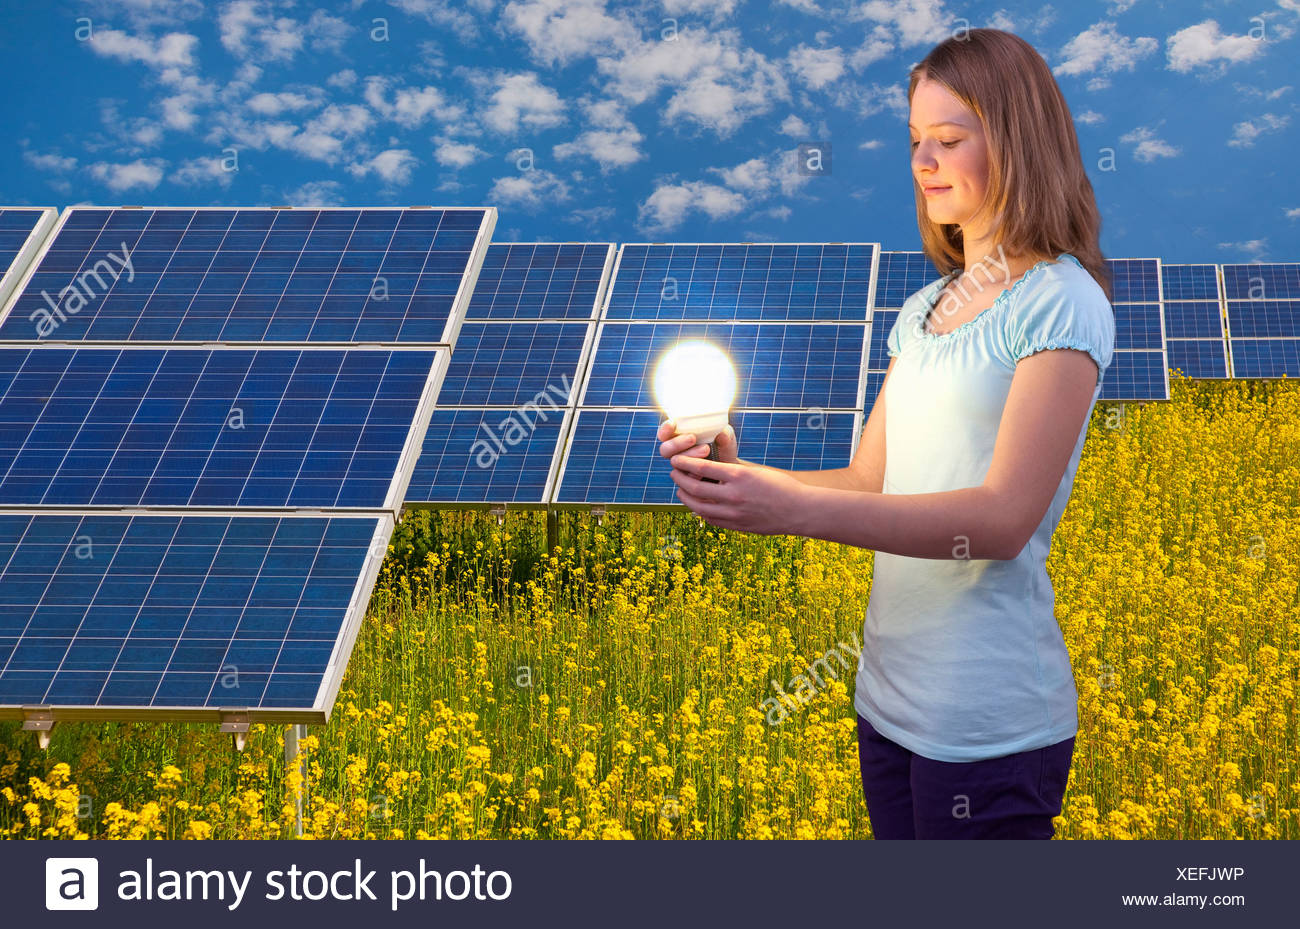 Woman with lightbulb and solar panels Stock Photo: 284315186 - Alamy